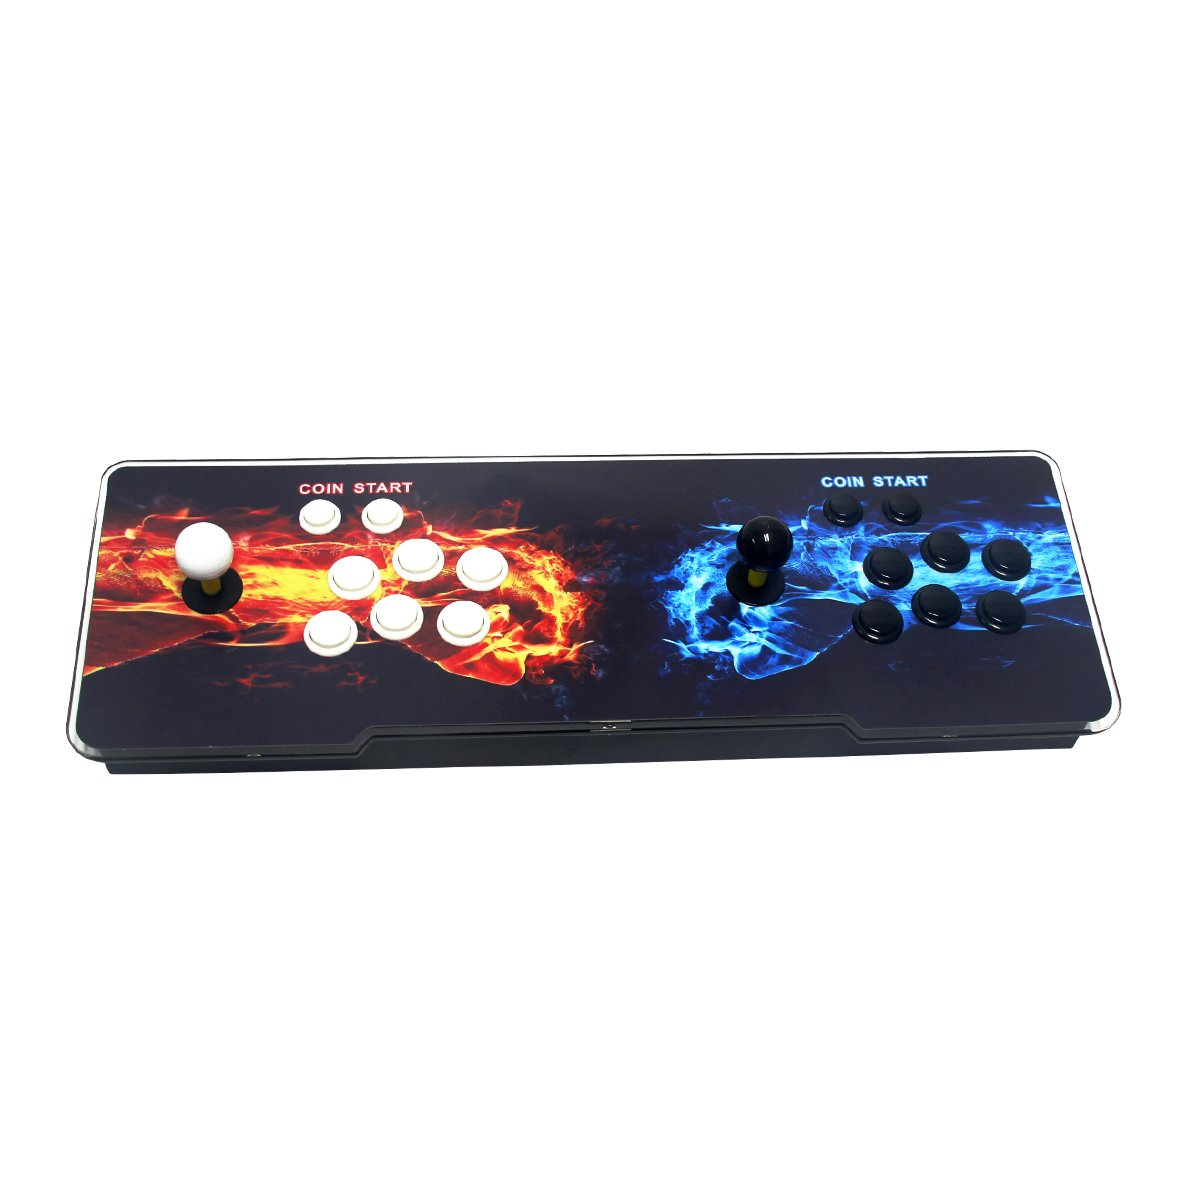 Wisamic Double Stick Arcade Video Game Console 800 Classic Games 2 Players Pandora's Box 4s with HDMI and VGA Output